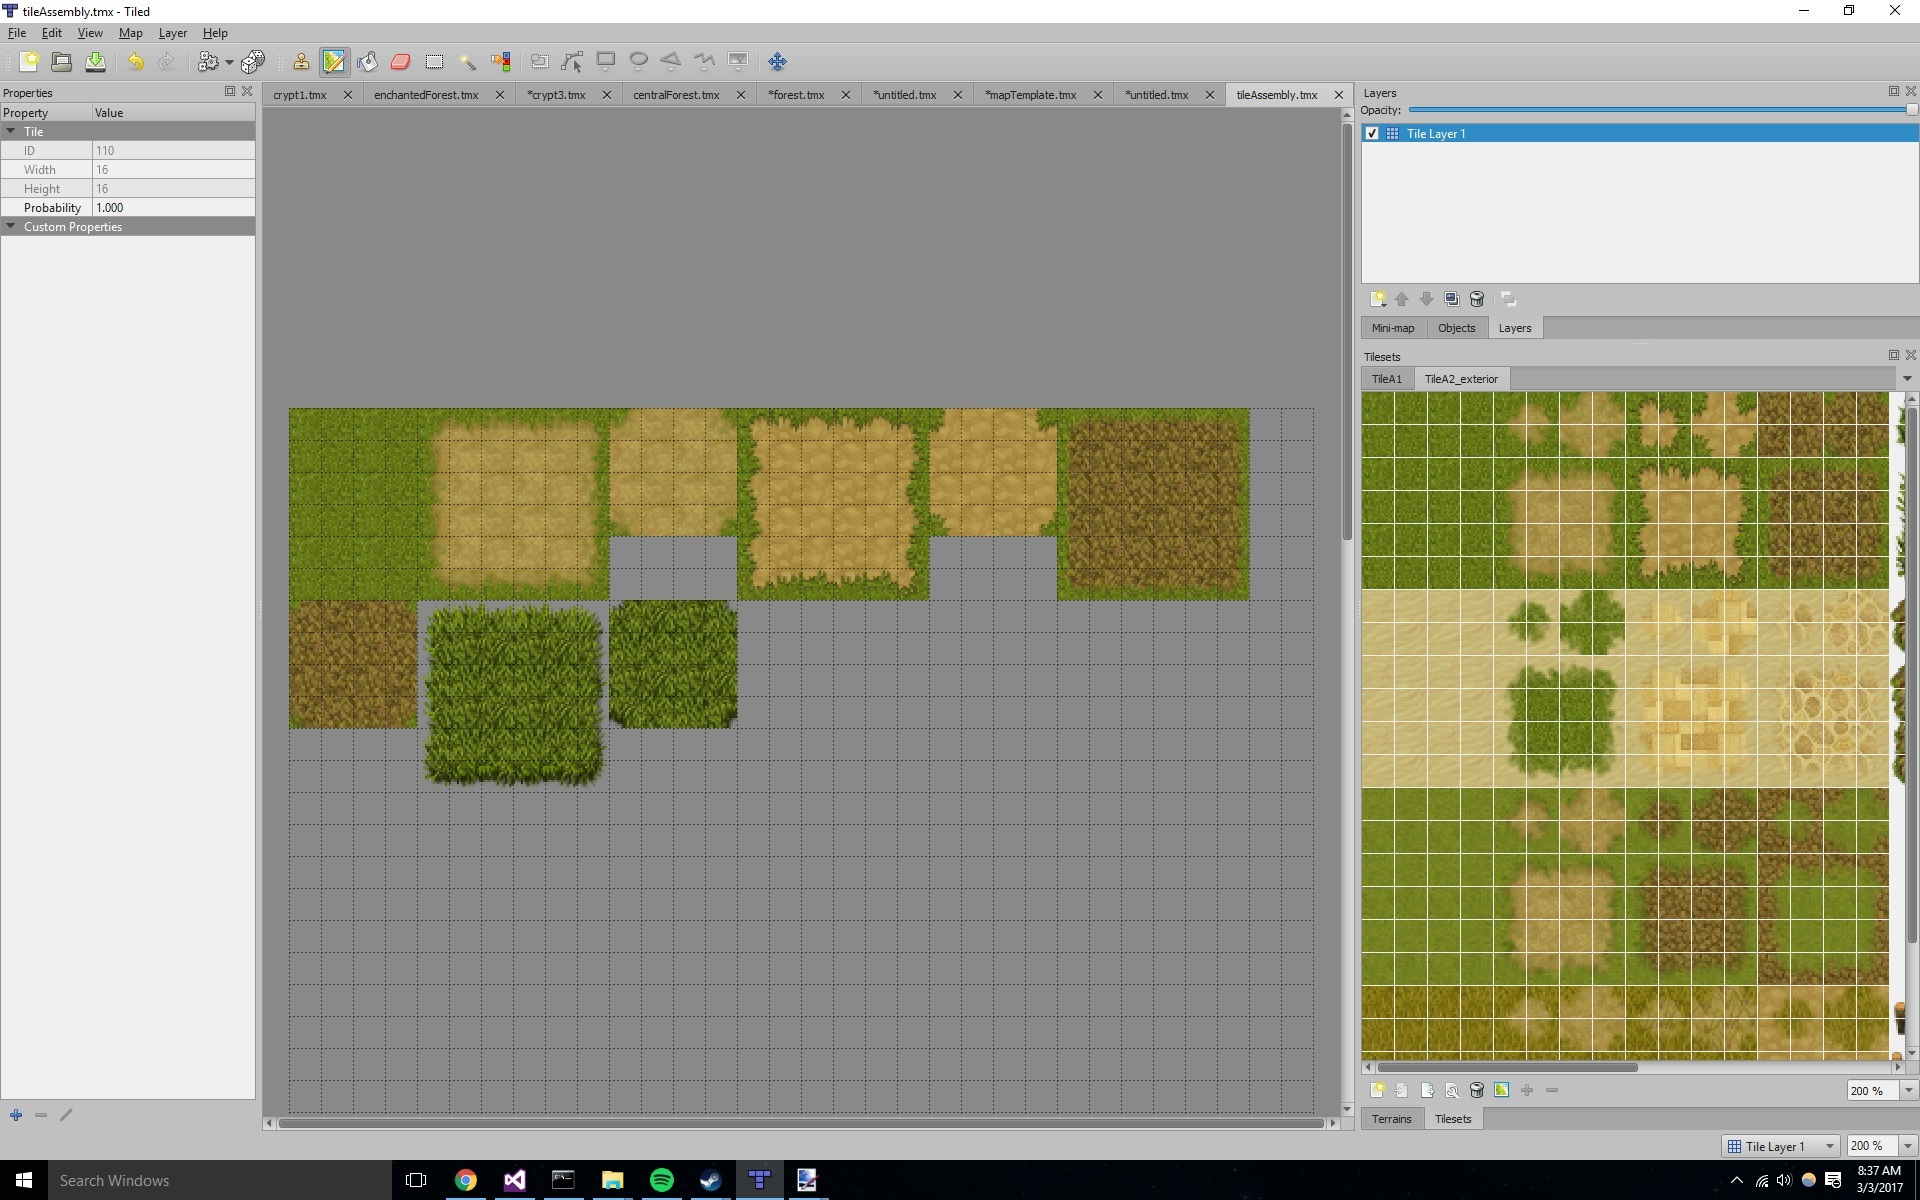 Autotile not working with RPG Maker TileSet - Question